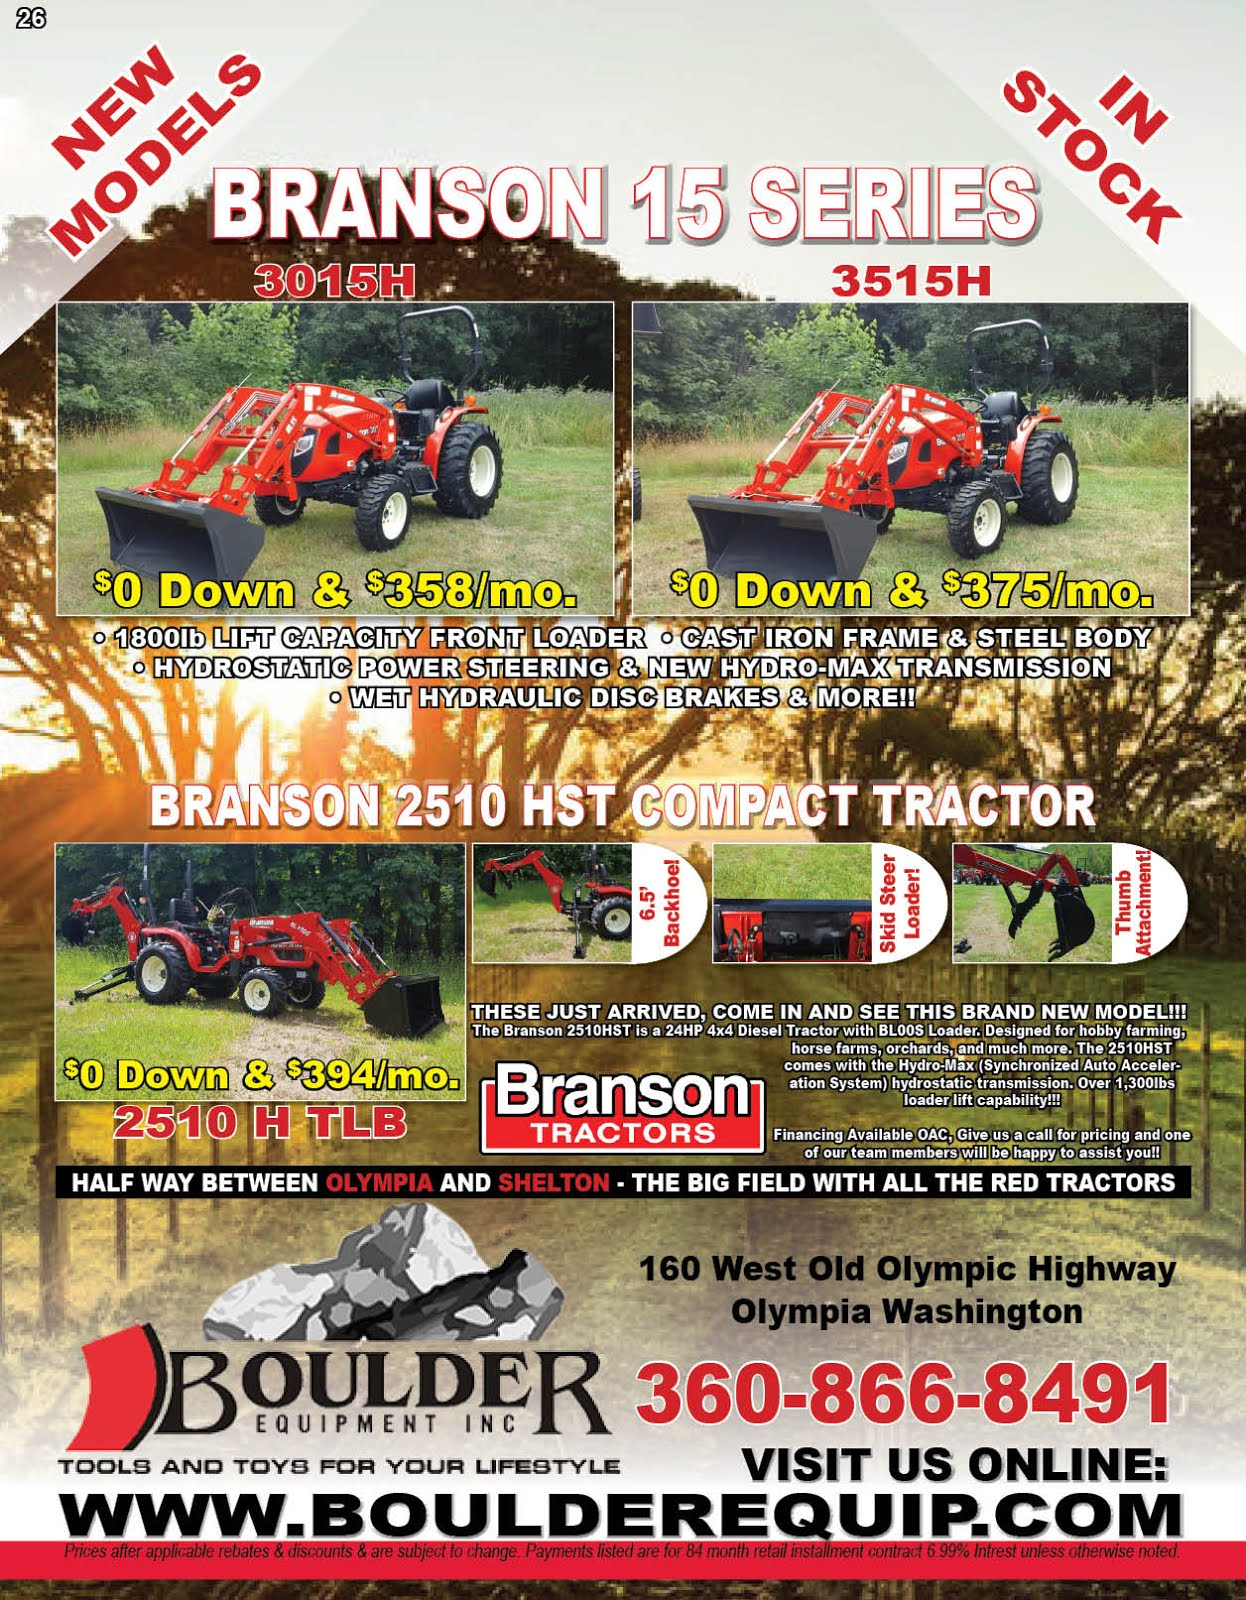 Boulder Equipment Has the New Branson 25 Series Premium Diesel Tractors